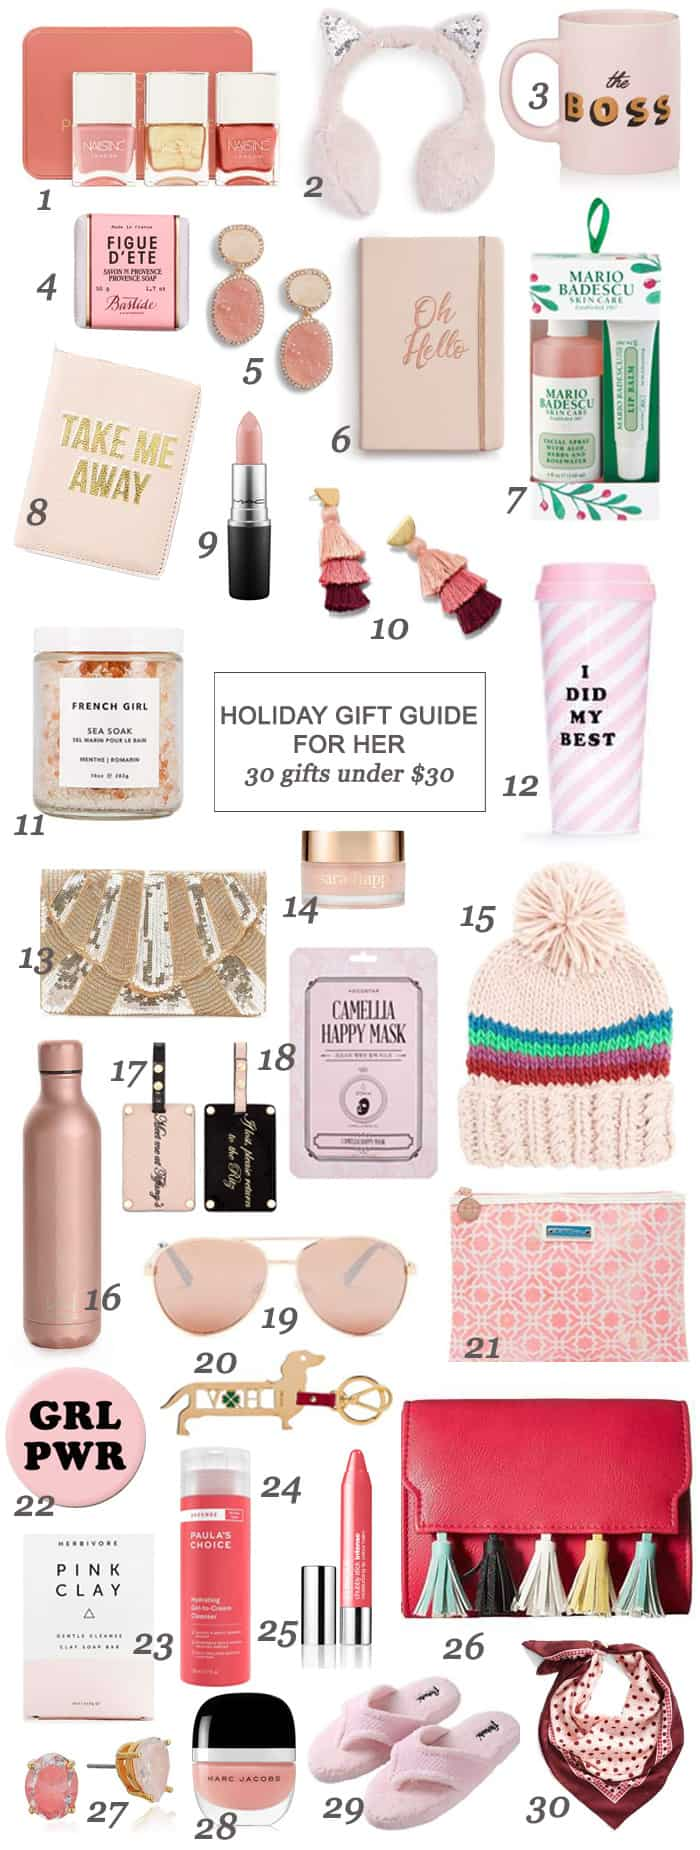 Holiday Gift Guide For Her: 30 Gifts Under $30 #Christmas #forher #woman #rosegold #holidays #shopping